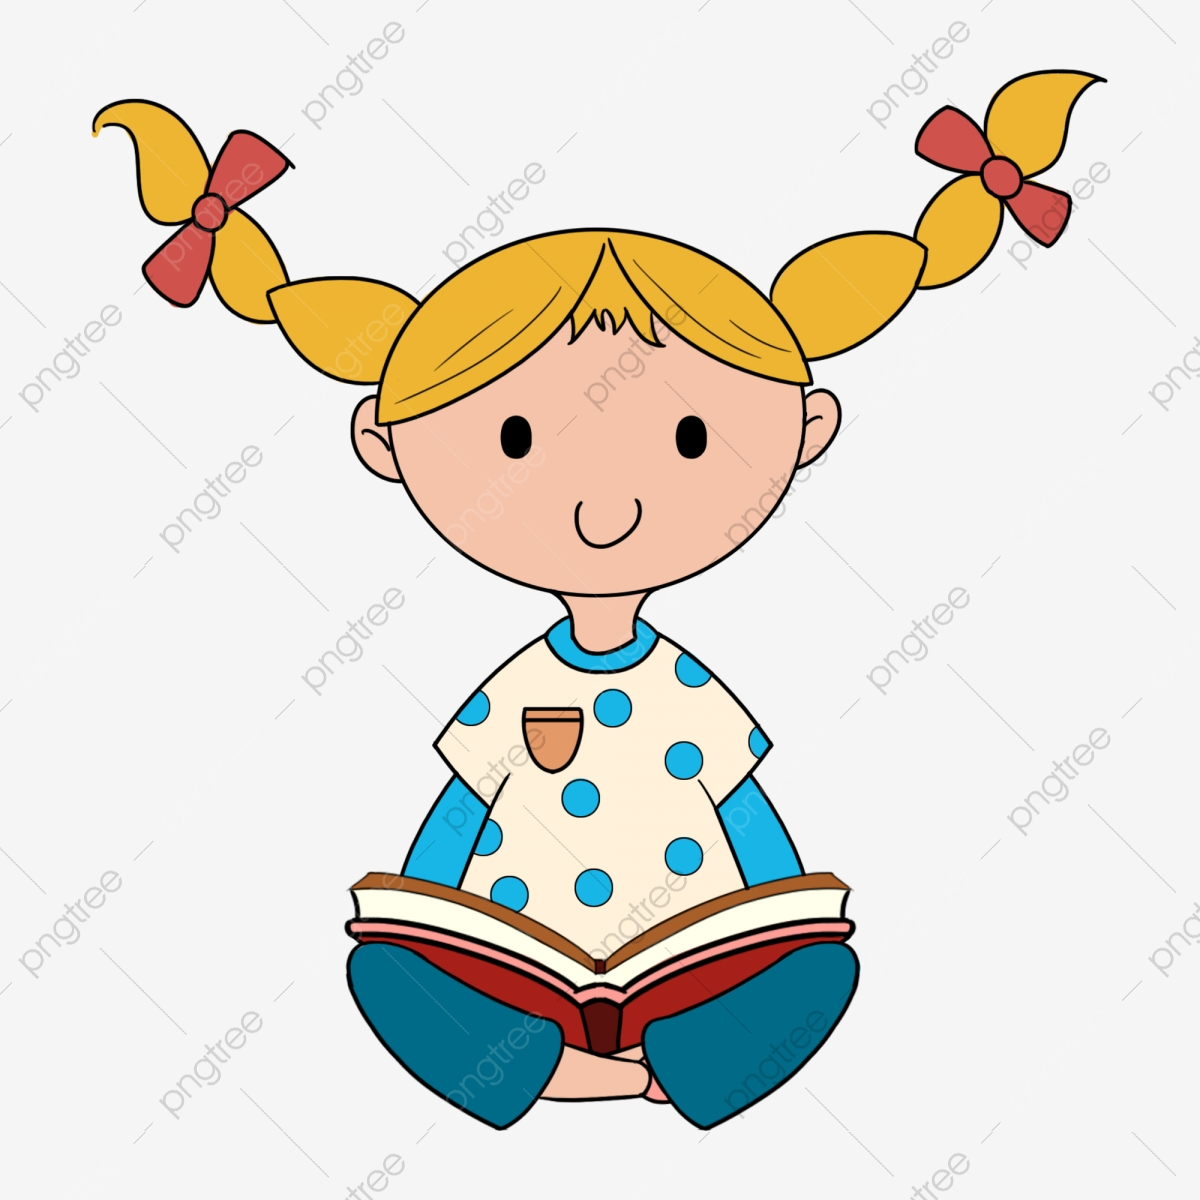 Study clipart cute. Reading summer child learn